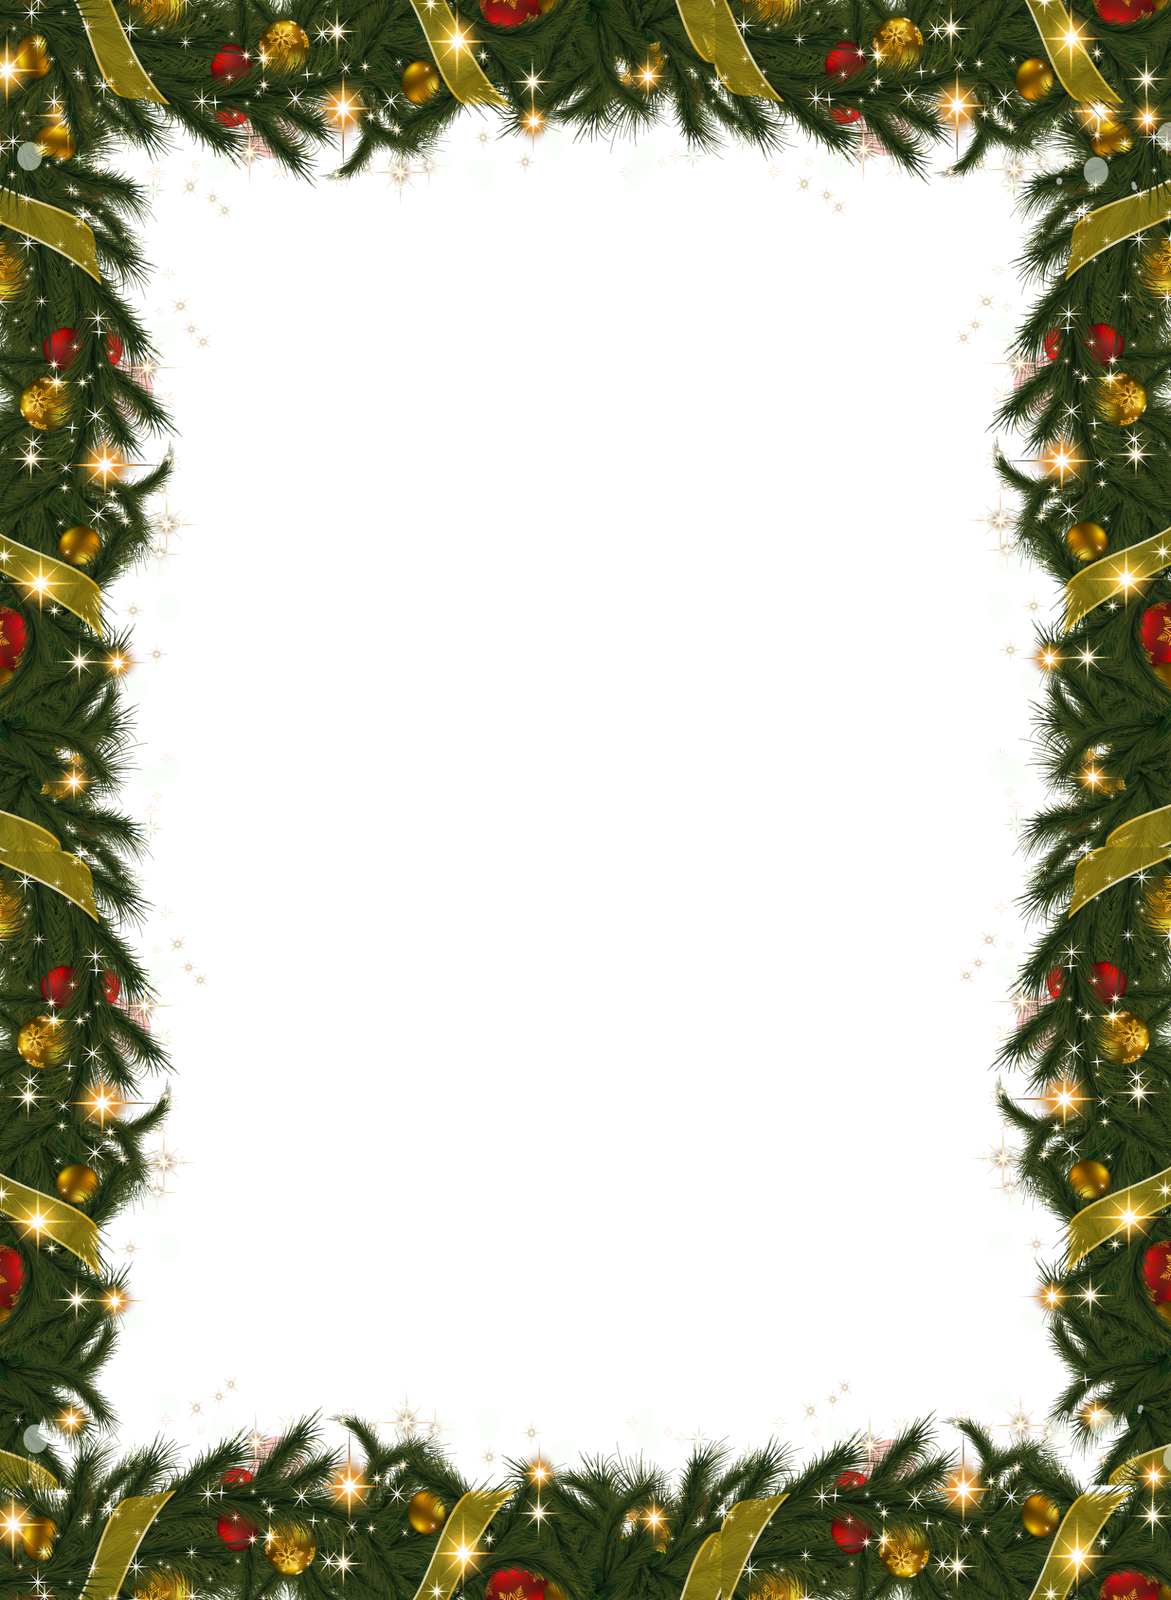 Frame clipart holiday Holiday Frame Yopriceville Christmas With